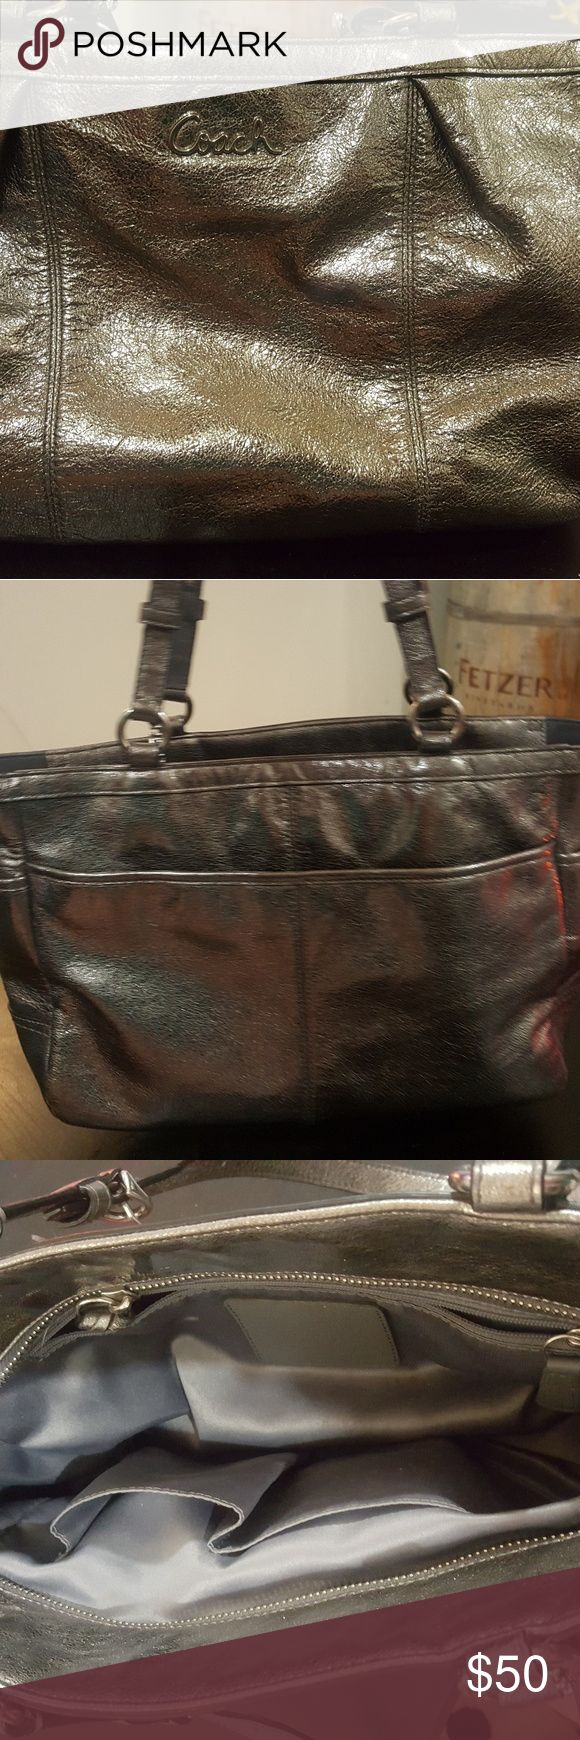 Coach silver shoulder bag Well loved silver coach bag, shoulder length. Inside lining has some spills that could be easily hand washed. The outside is perfect, no flaws. Coach Bags Shoulder Bags